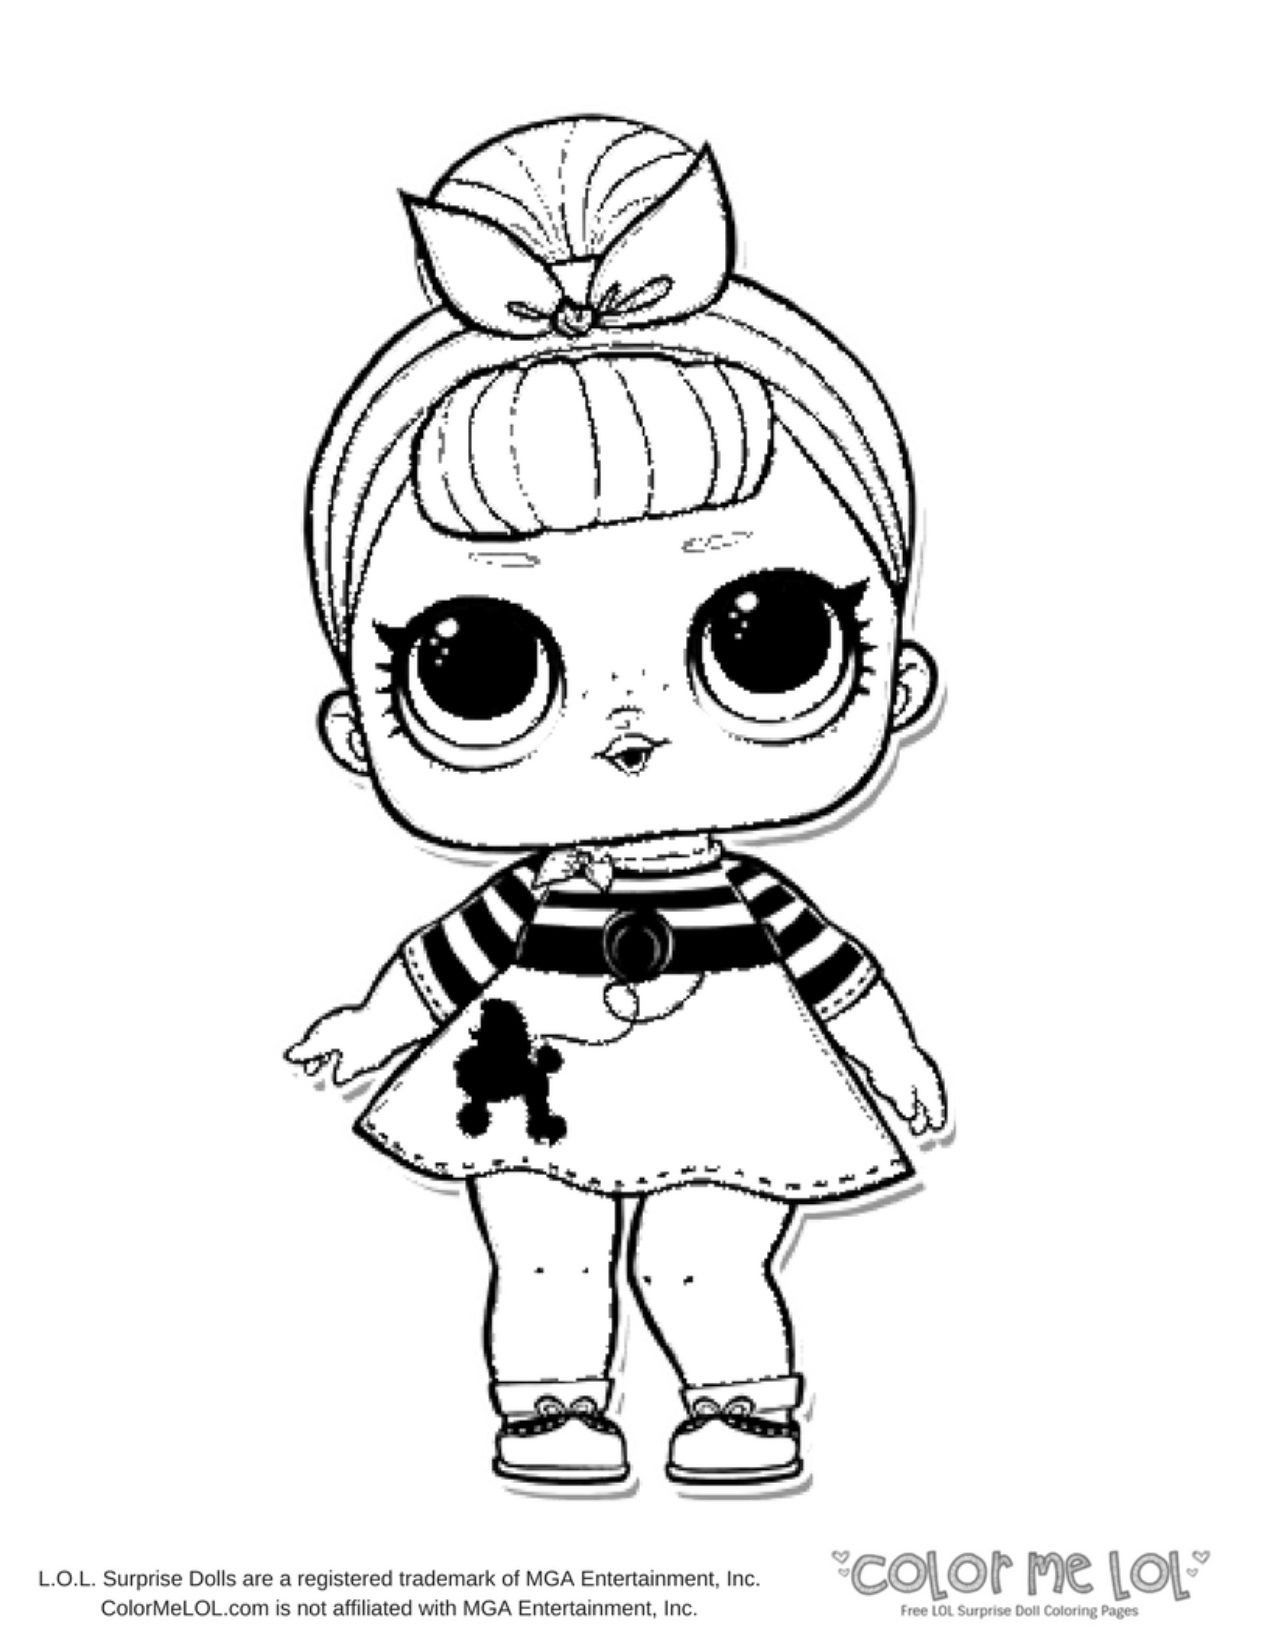 Lol Coloring Pages Doll Coloring Pages Free Printable Lol Surprise Dolls 8 Futurama Albanysinsanity Com Unicorn Coloring Pages Animal Coloring Pages Star Coloring Pages